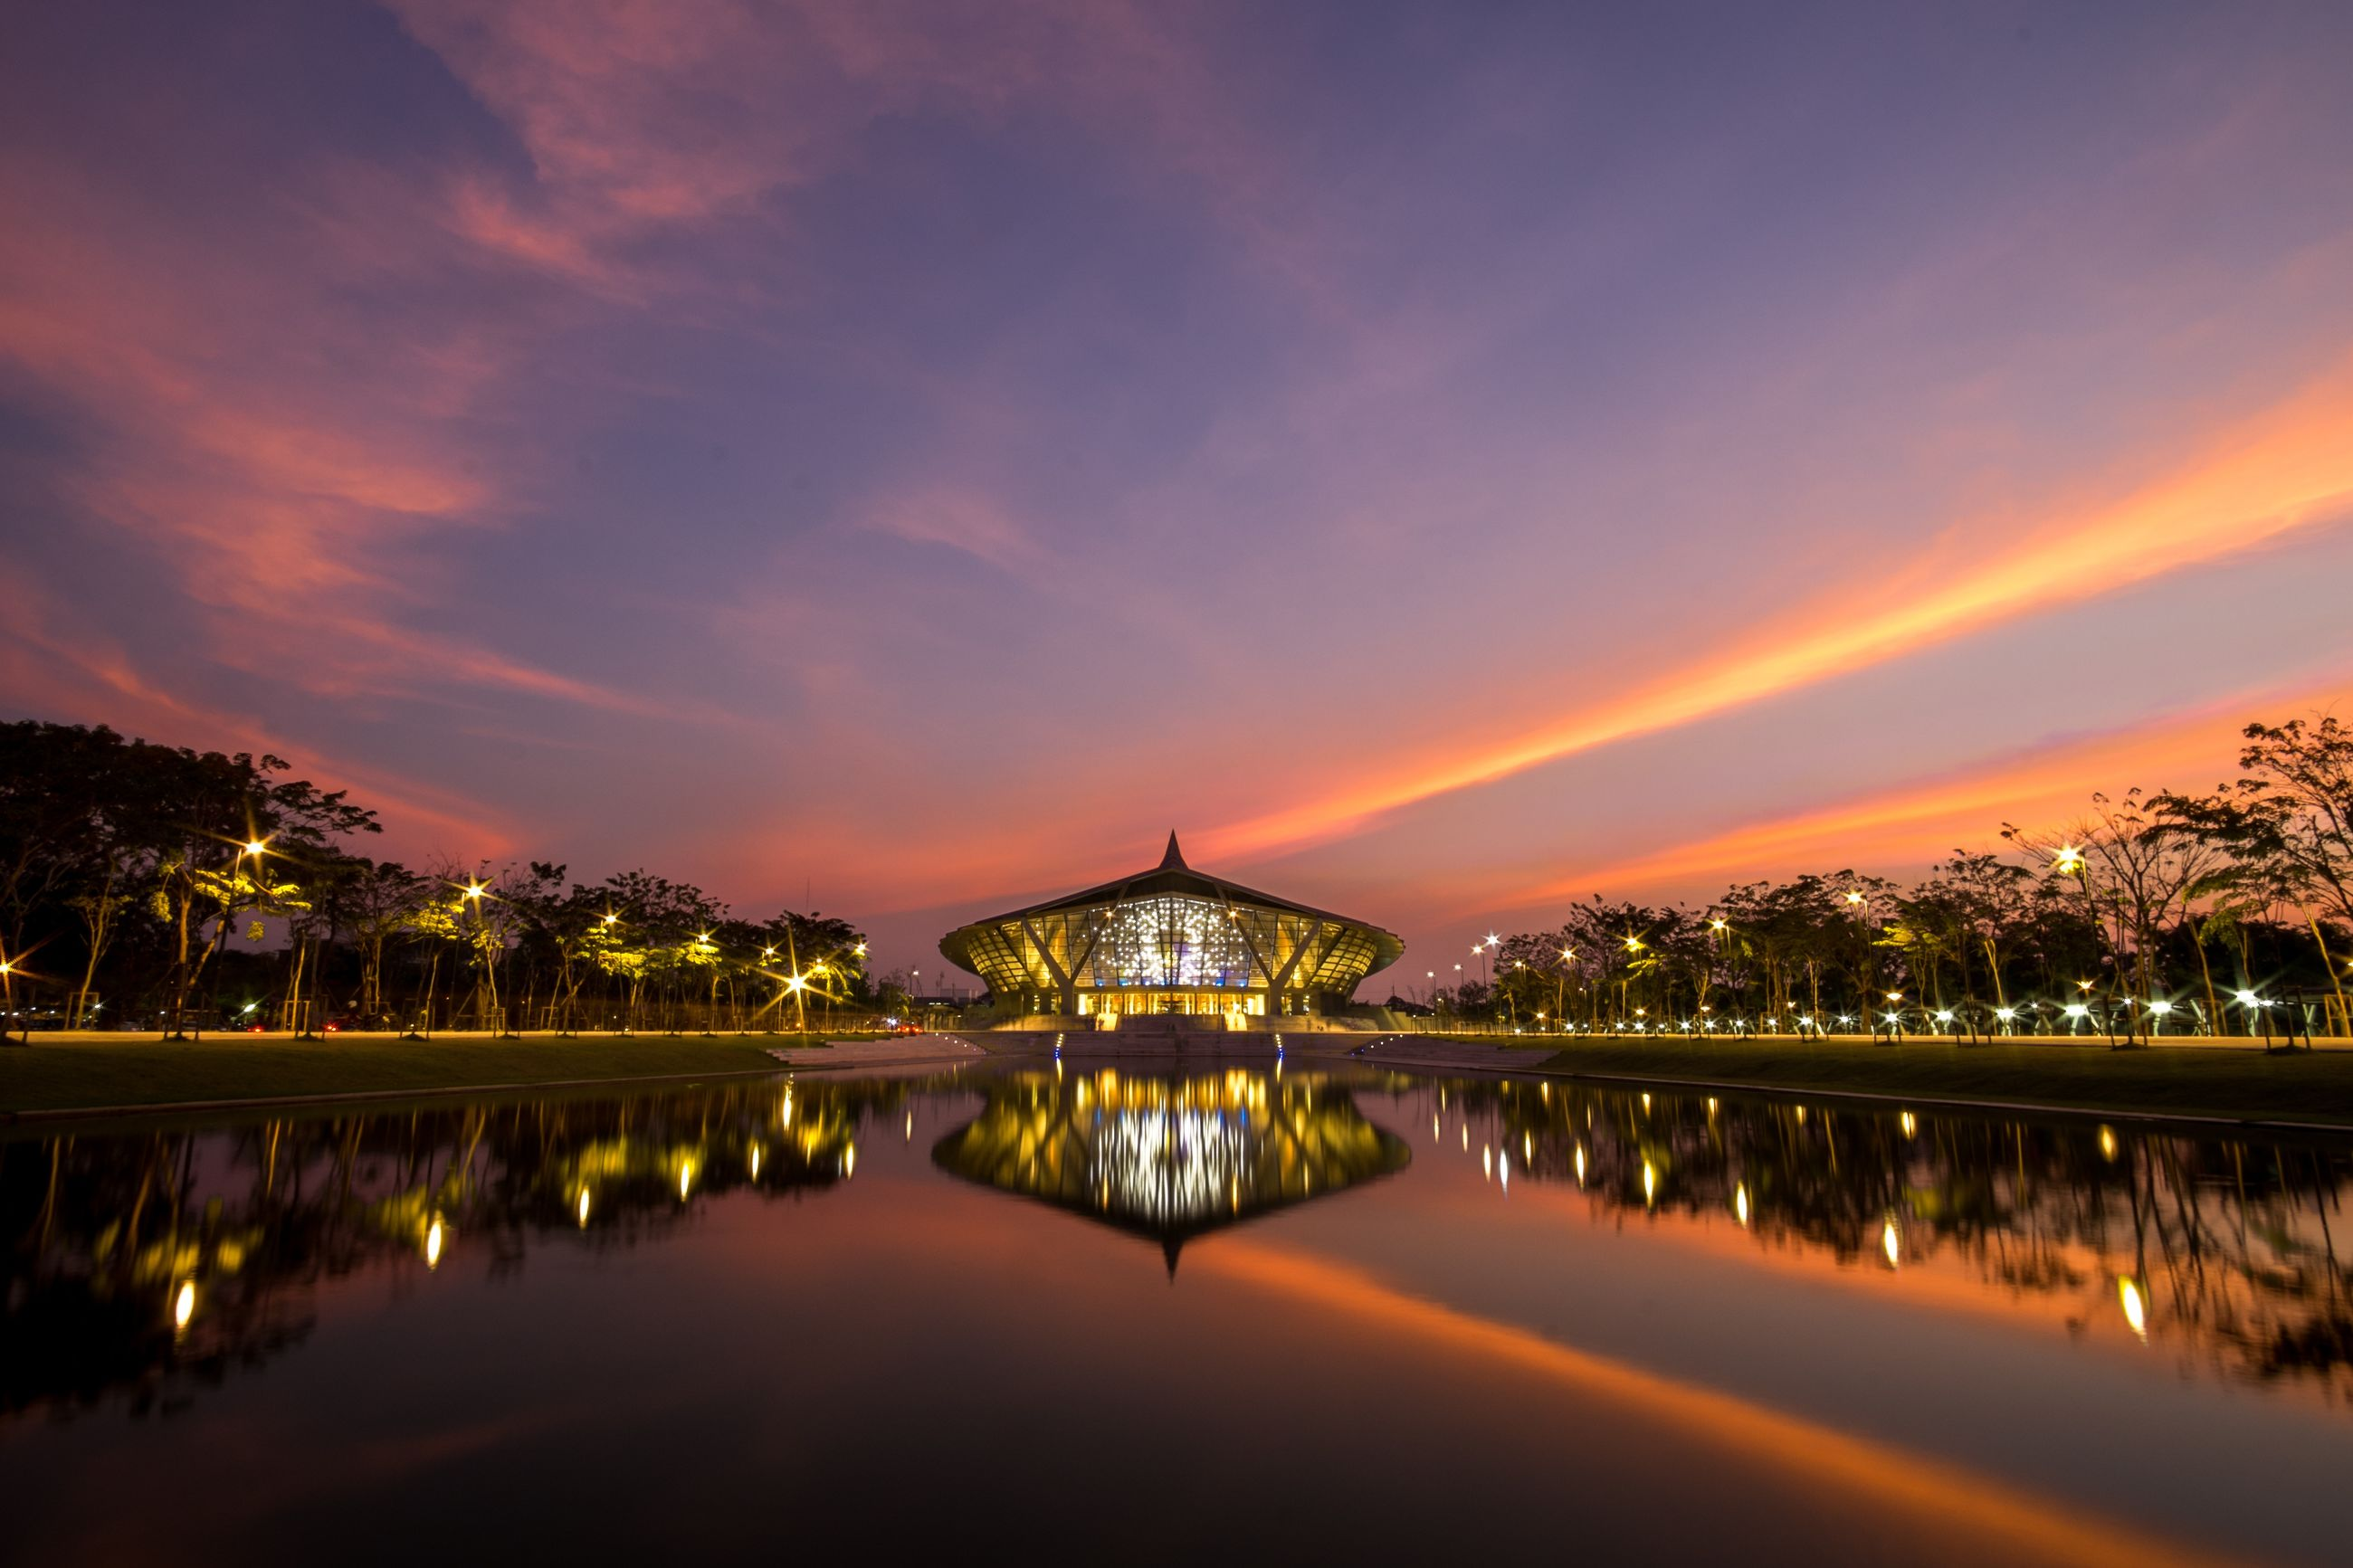 reflection, dusk, city, night, architecture, illuminated, sunset, water, building exterior, cityscape, sky, bridge - man made structure, travel destinations, cloud - sky, business finance and industry, waterfront, outdoors, built structure, multi colored, nature, landscape, vacations, no people, scenics, urban skyline, tree